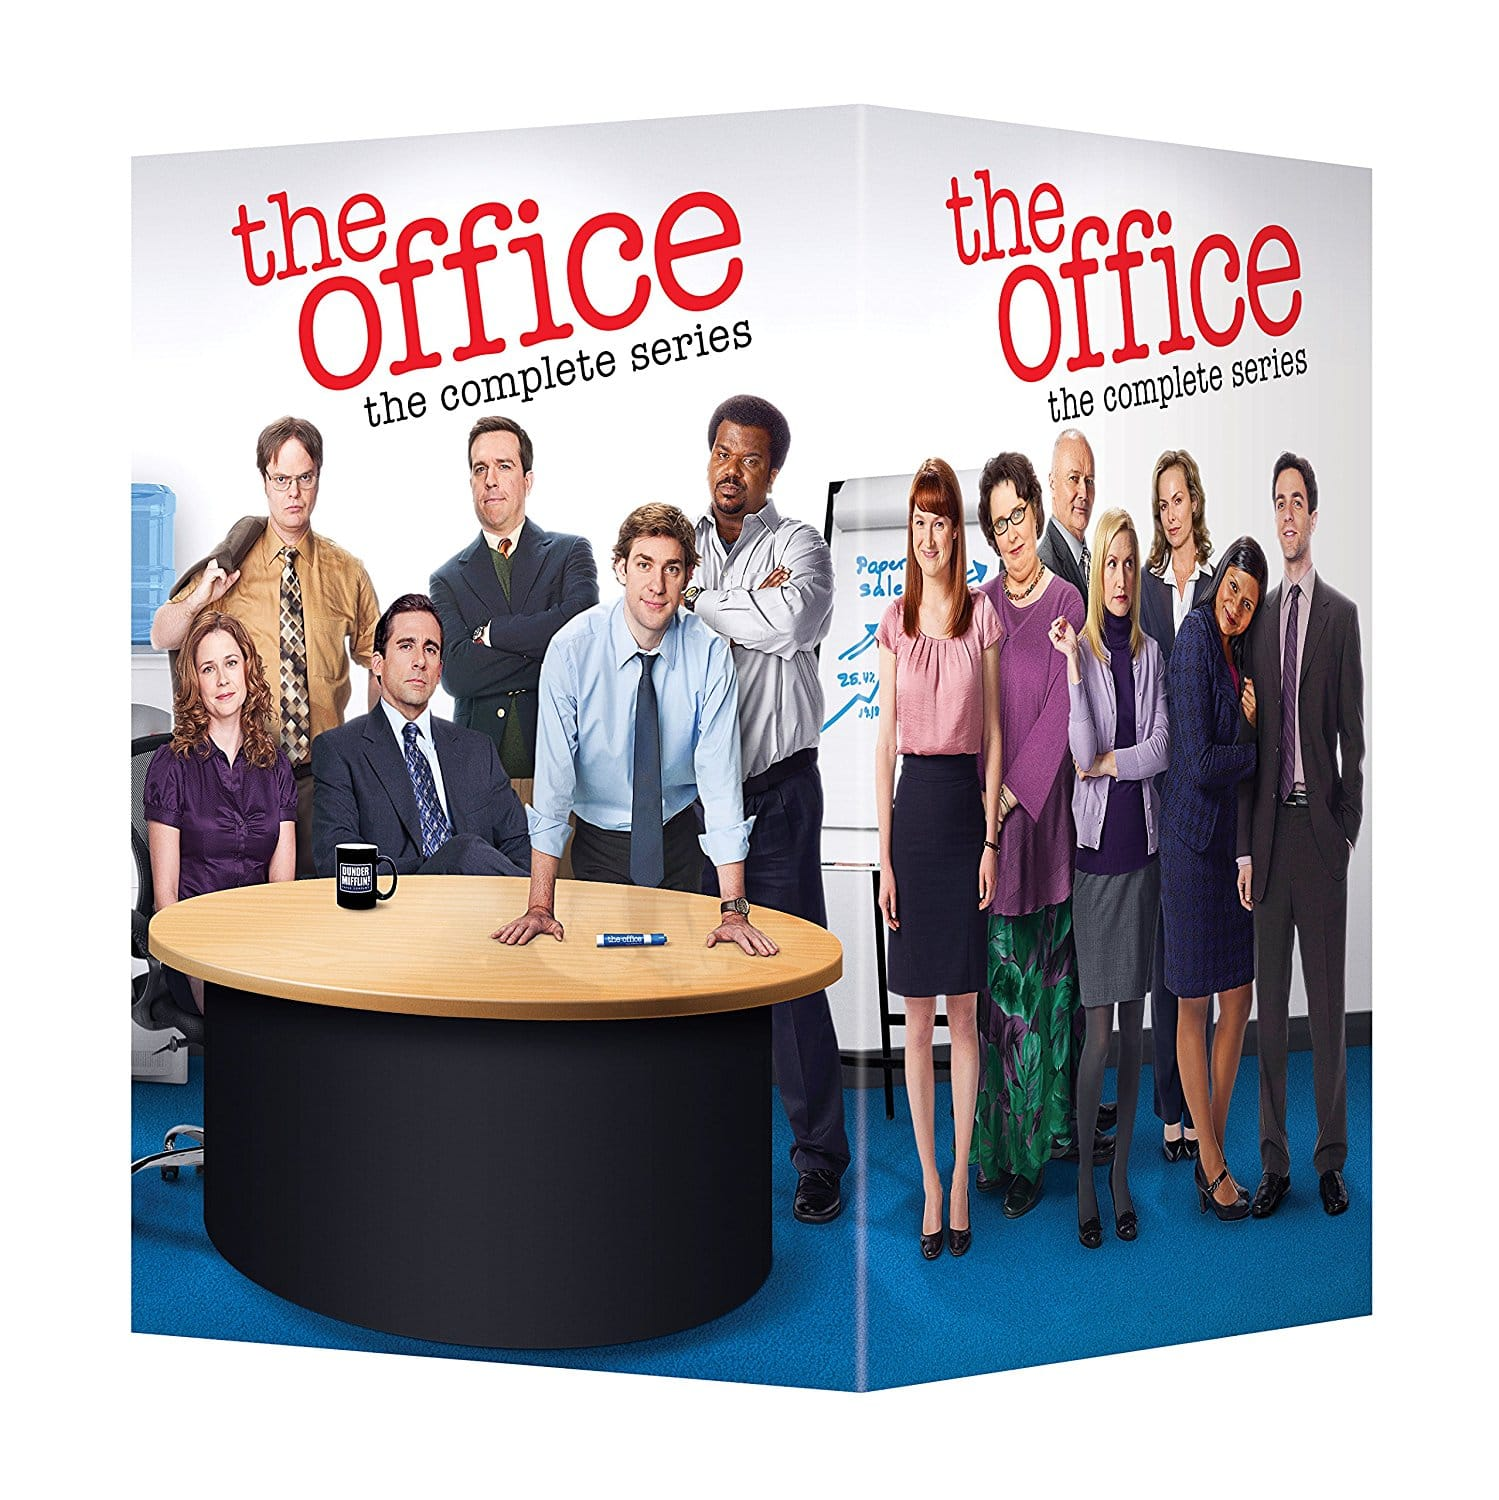 The Office: The Complete Series (38-Disc DVD) $39.49 + Free Shipping via Amazon